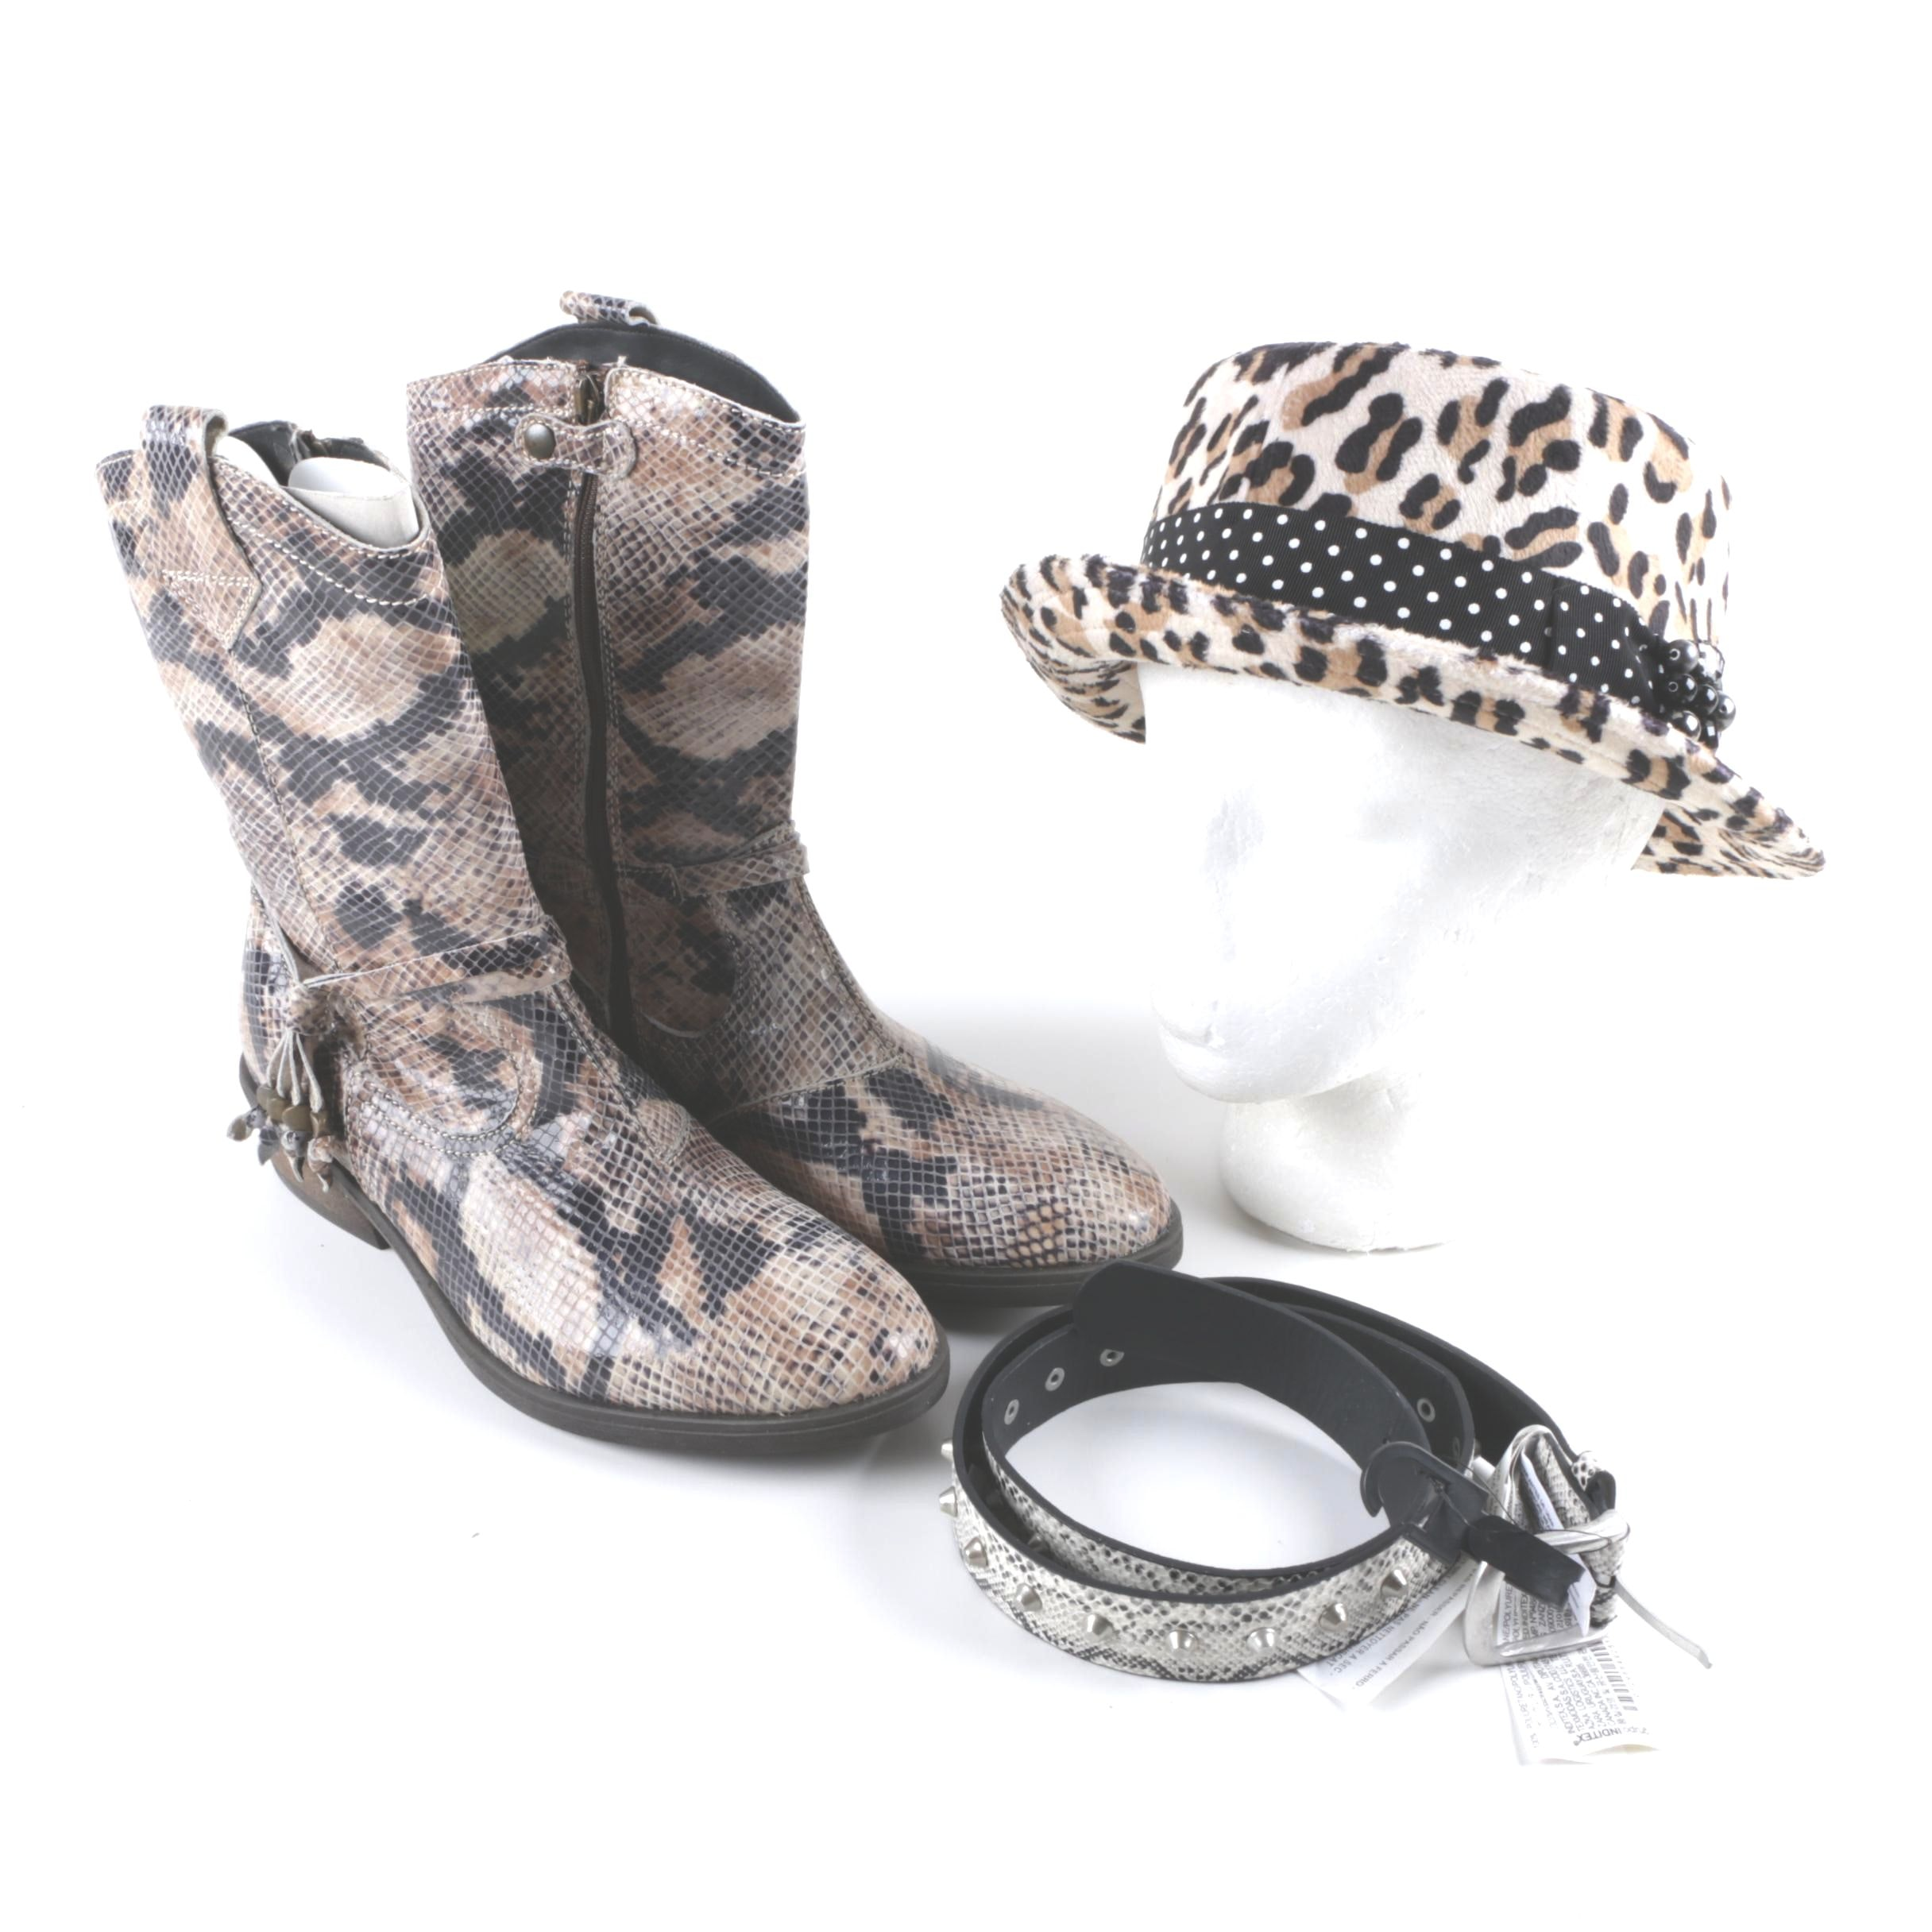 Snakeskin Printed Western Boots and Animal Print Accessories